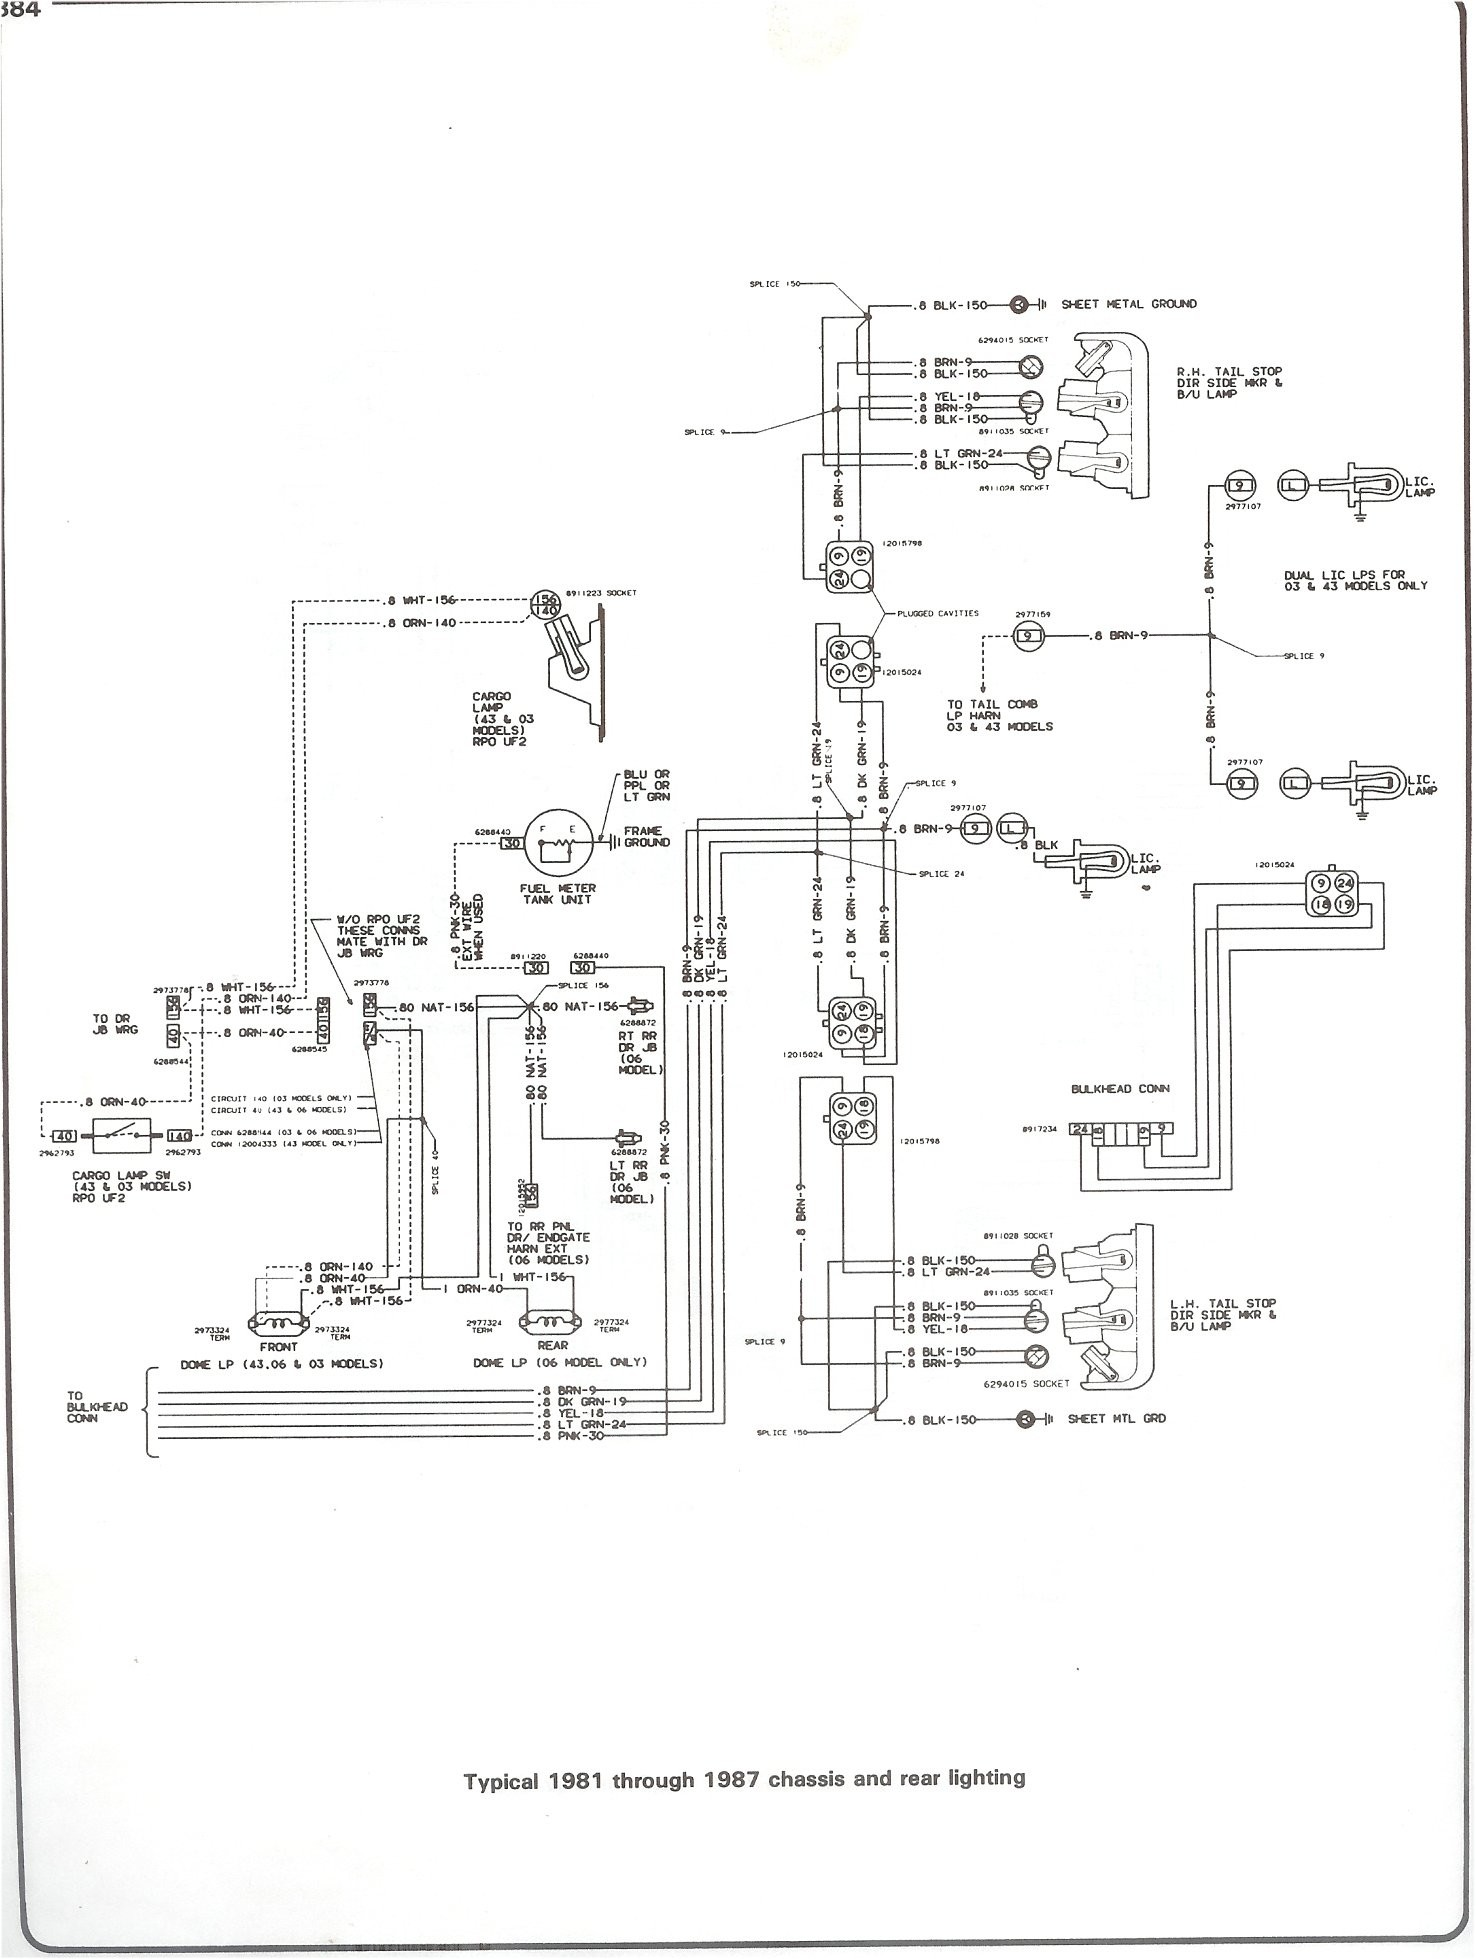 82 chevy 4x4 truck wiring diagram wiring schematic diagram82 s10 fuse box auto electrical wiring diagram 1983 chevy truck engine diagram related with 82